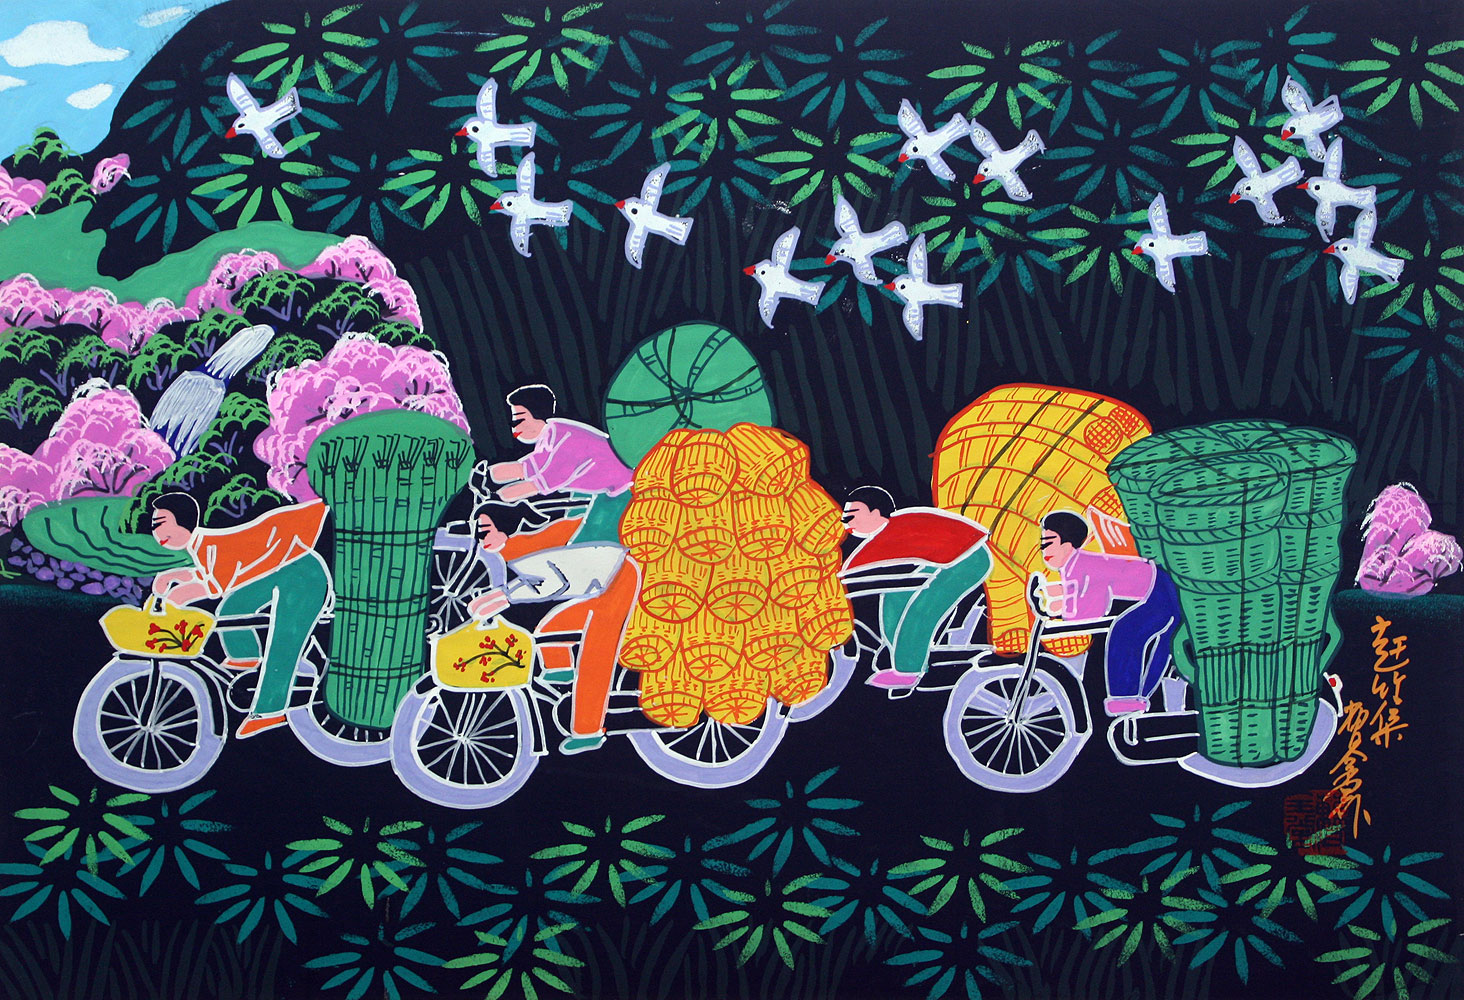 Going to Bamboo Market - Chinese Folk Art Painting